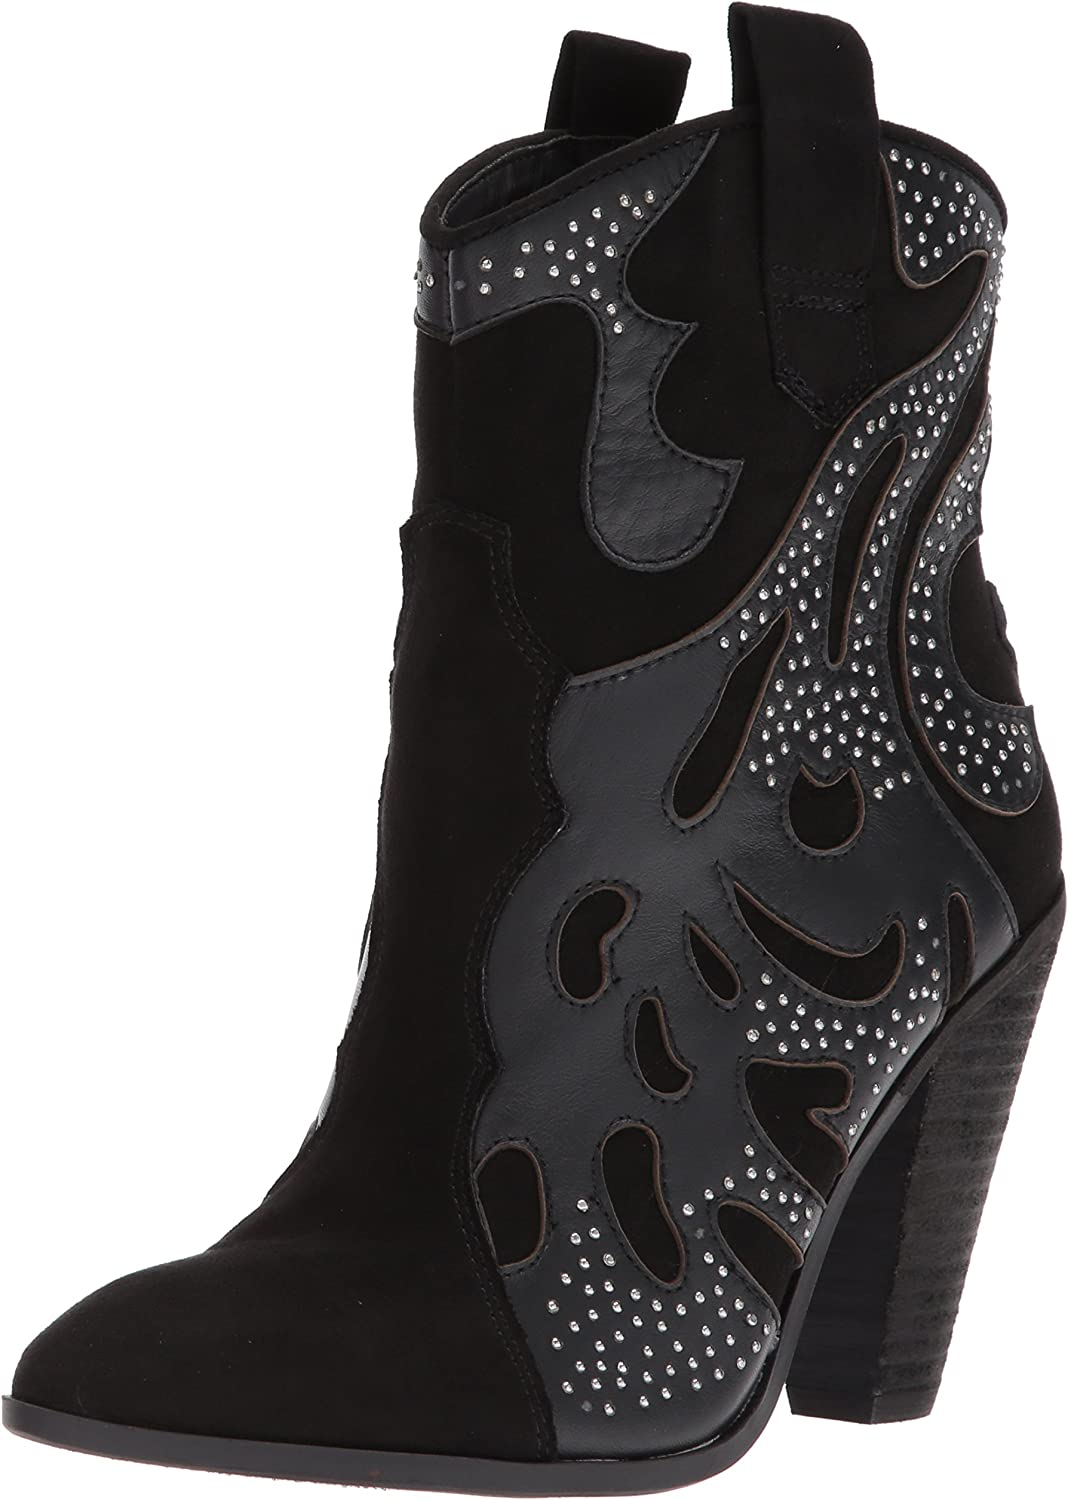 Carlos by Carlos Santana Womens Sterling Fashion Boot